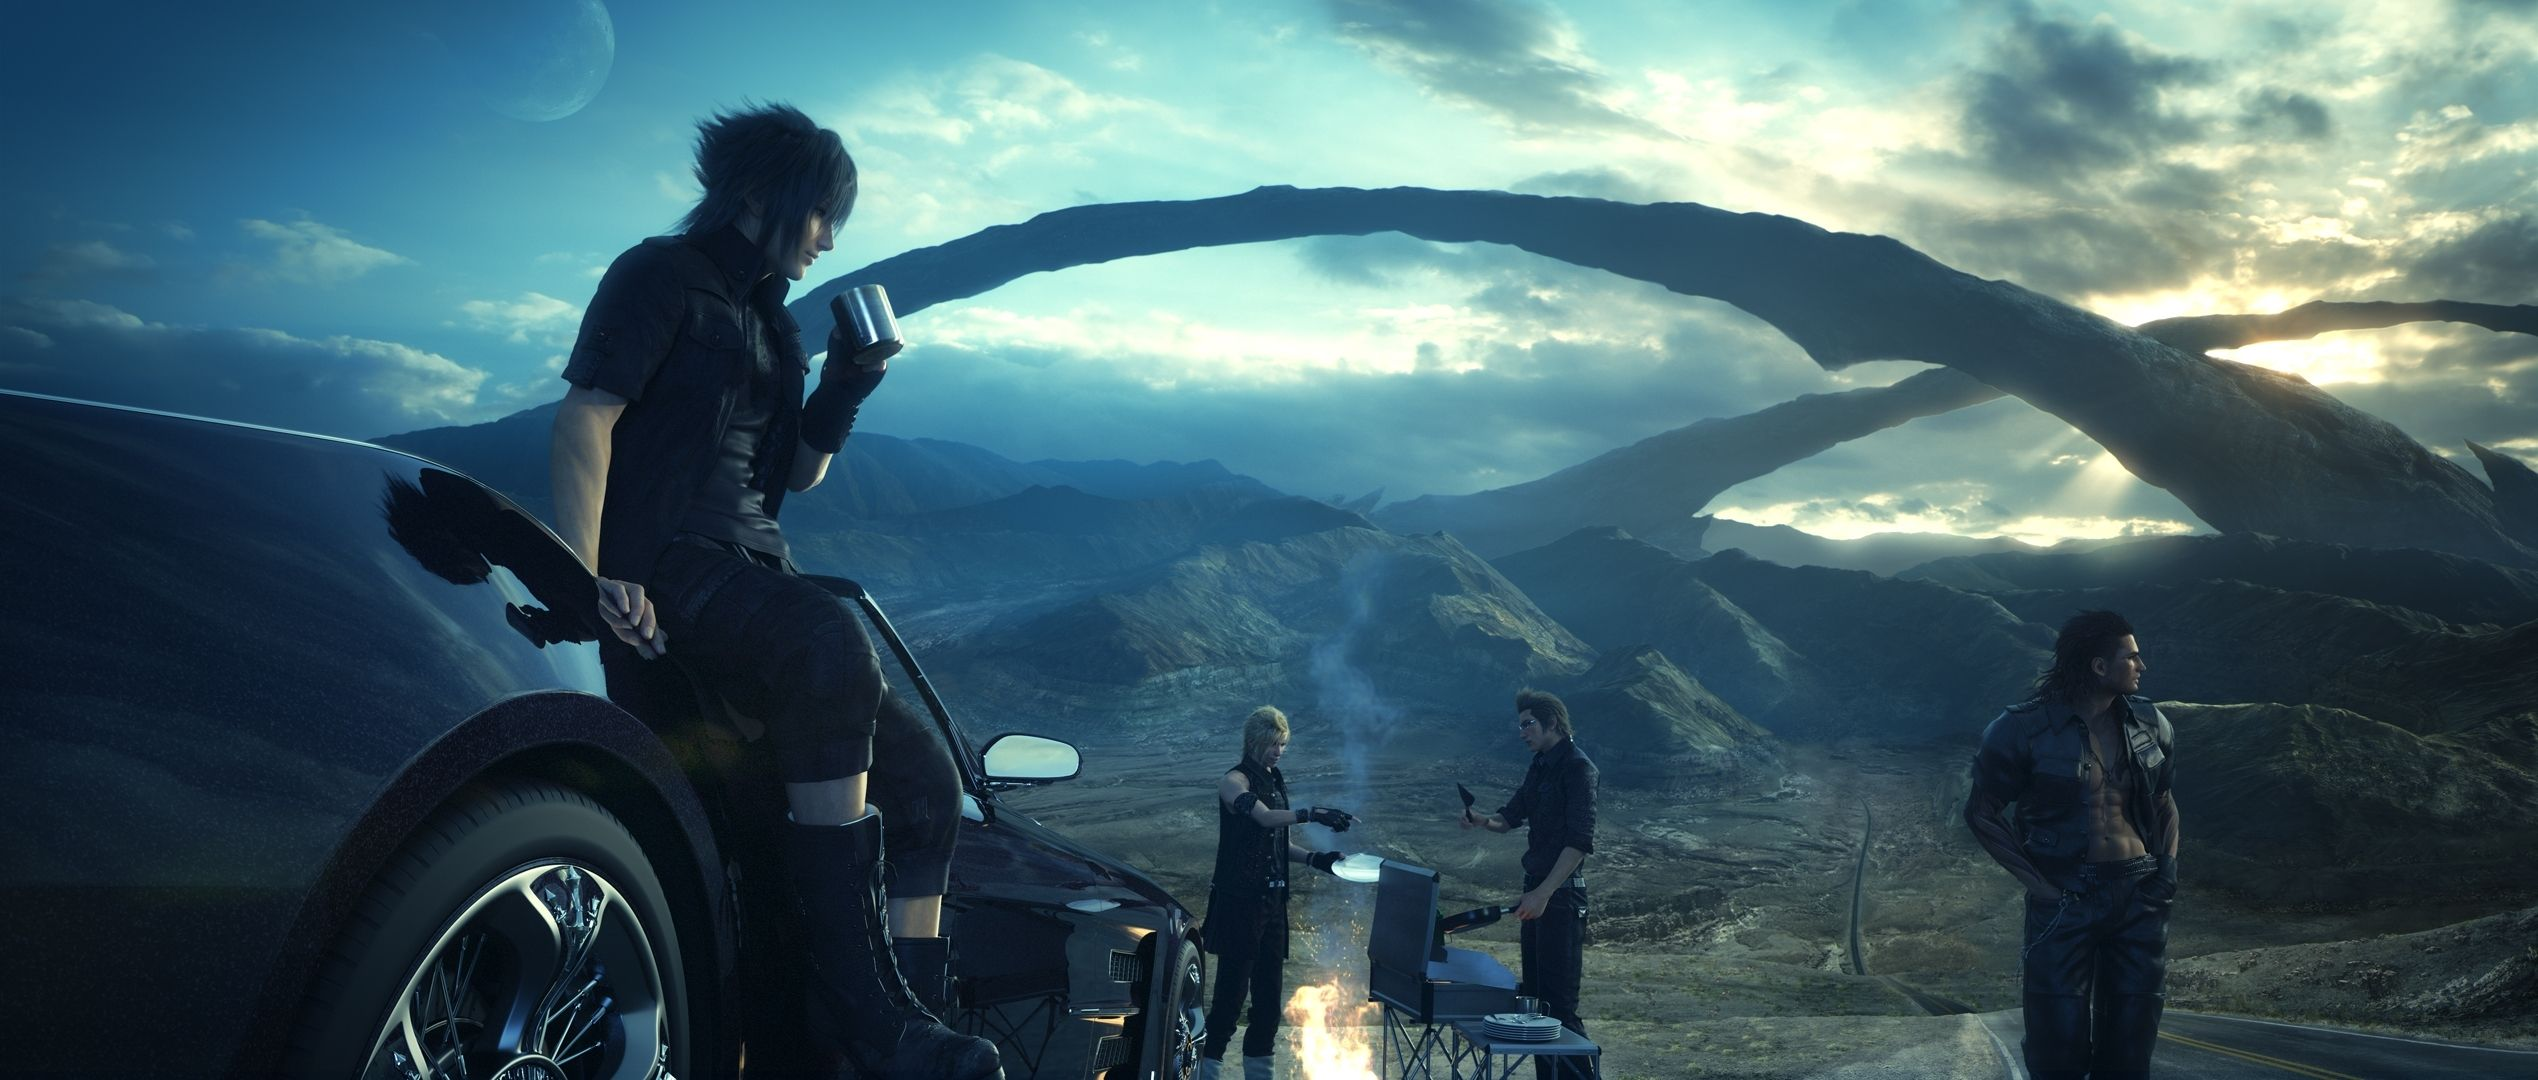 419916 Jpg 1920 1080 Final Fantasy Cloud Final Fantasy Xv Wallpapers Final Fantasy Wallpaper Hd